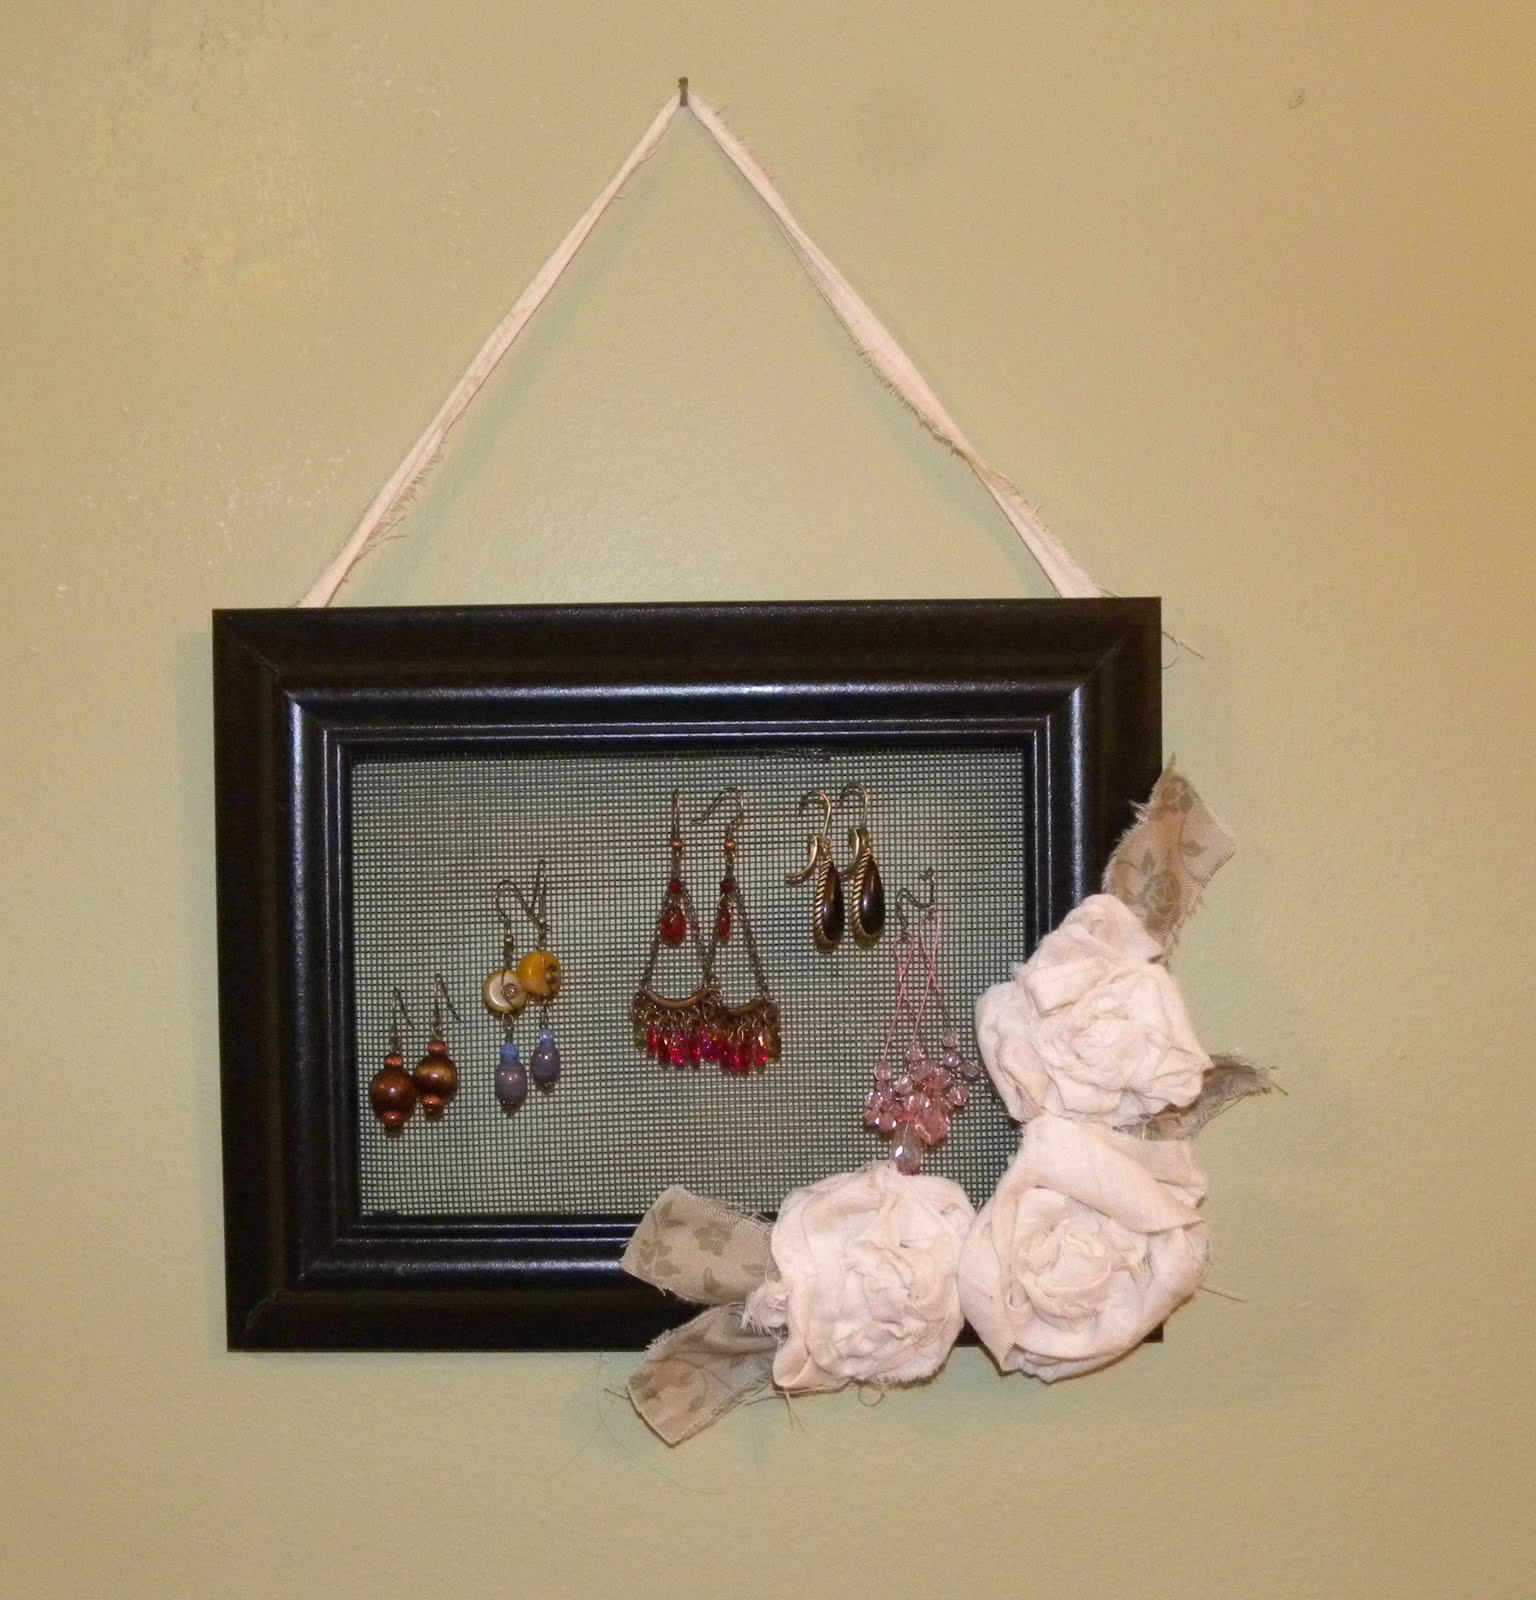 From The Hive: earring holder from a frame